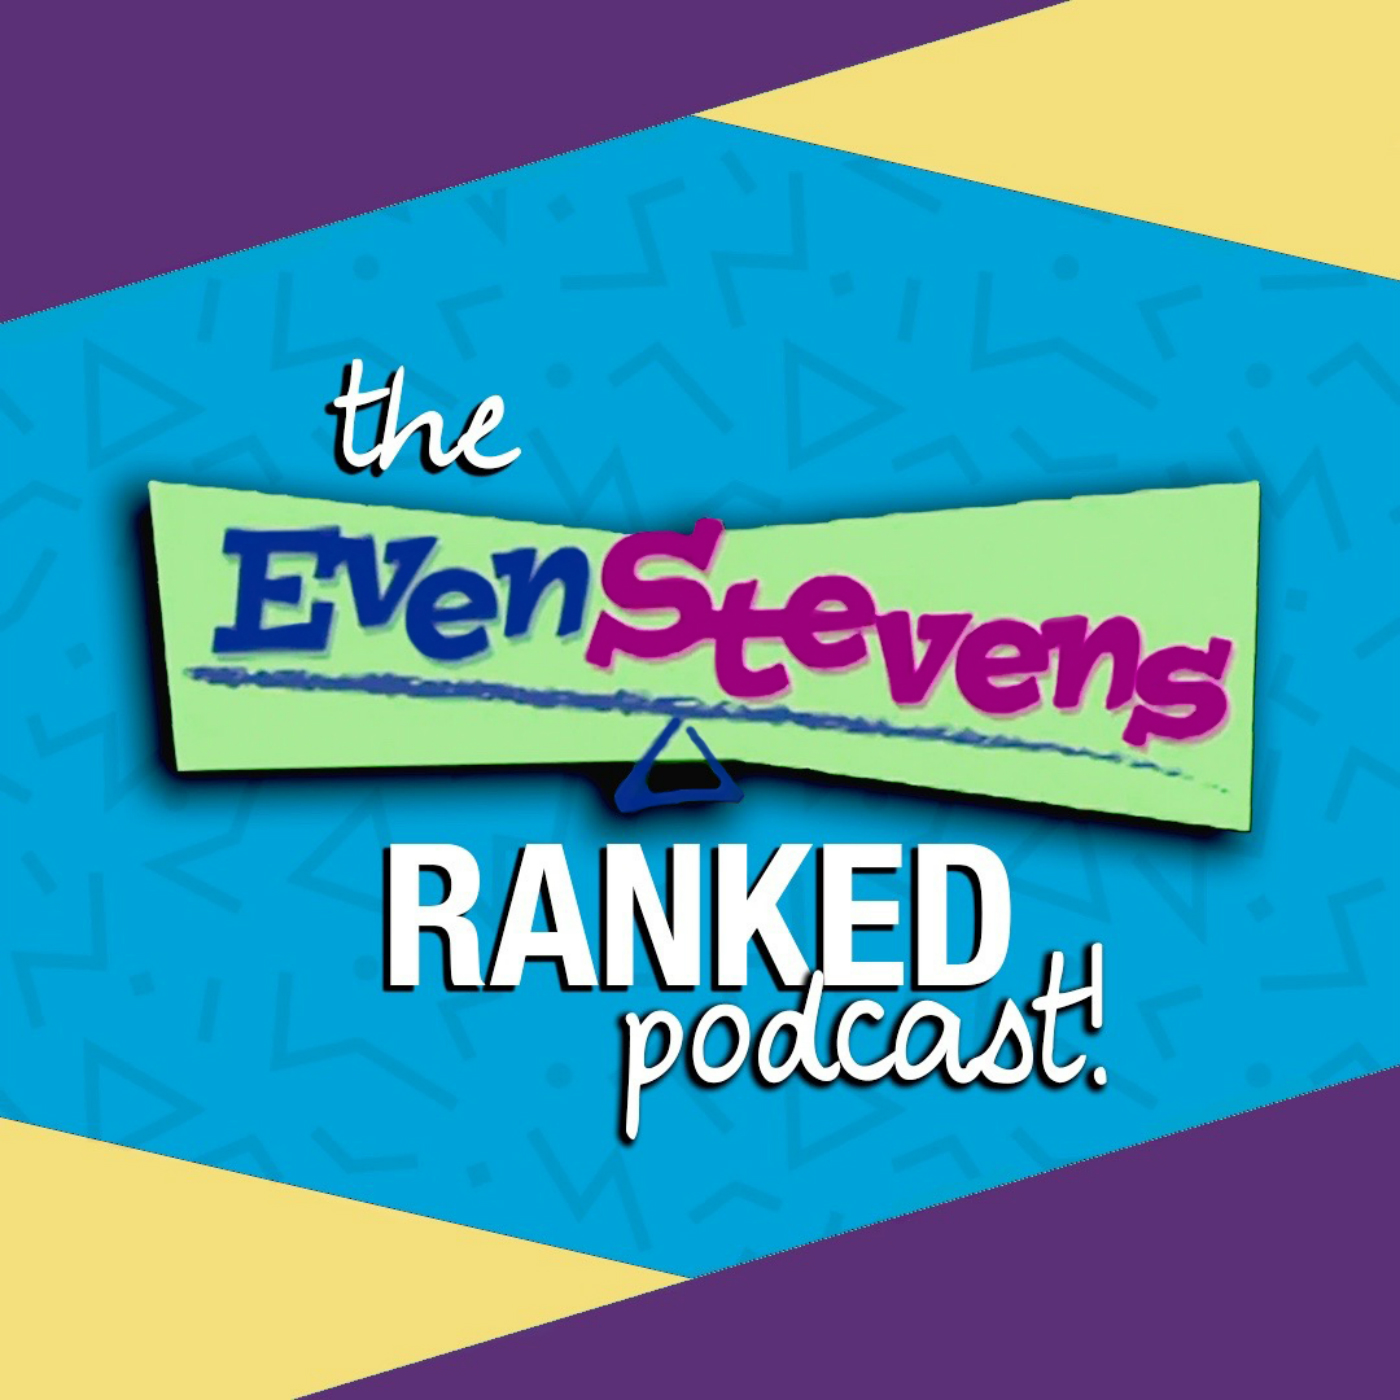 The Even Stevens Ranked Podcast!